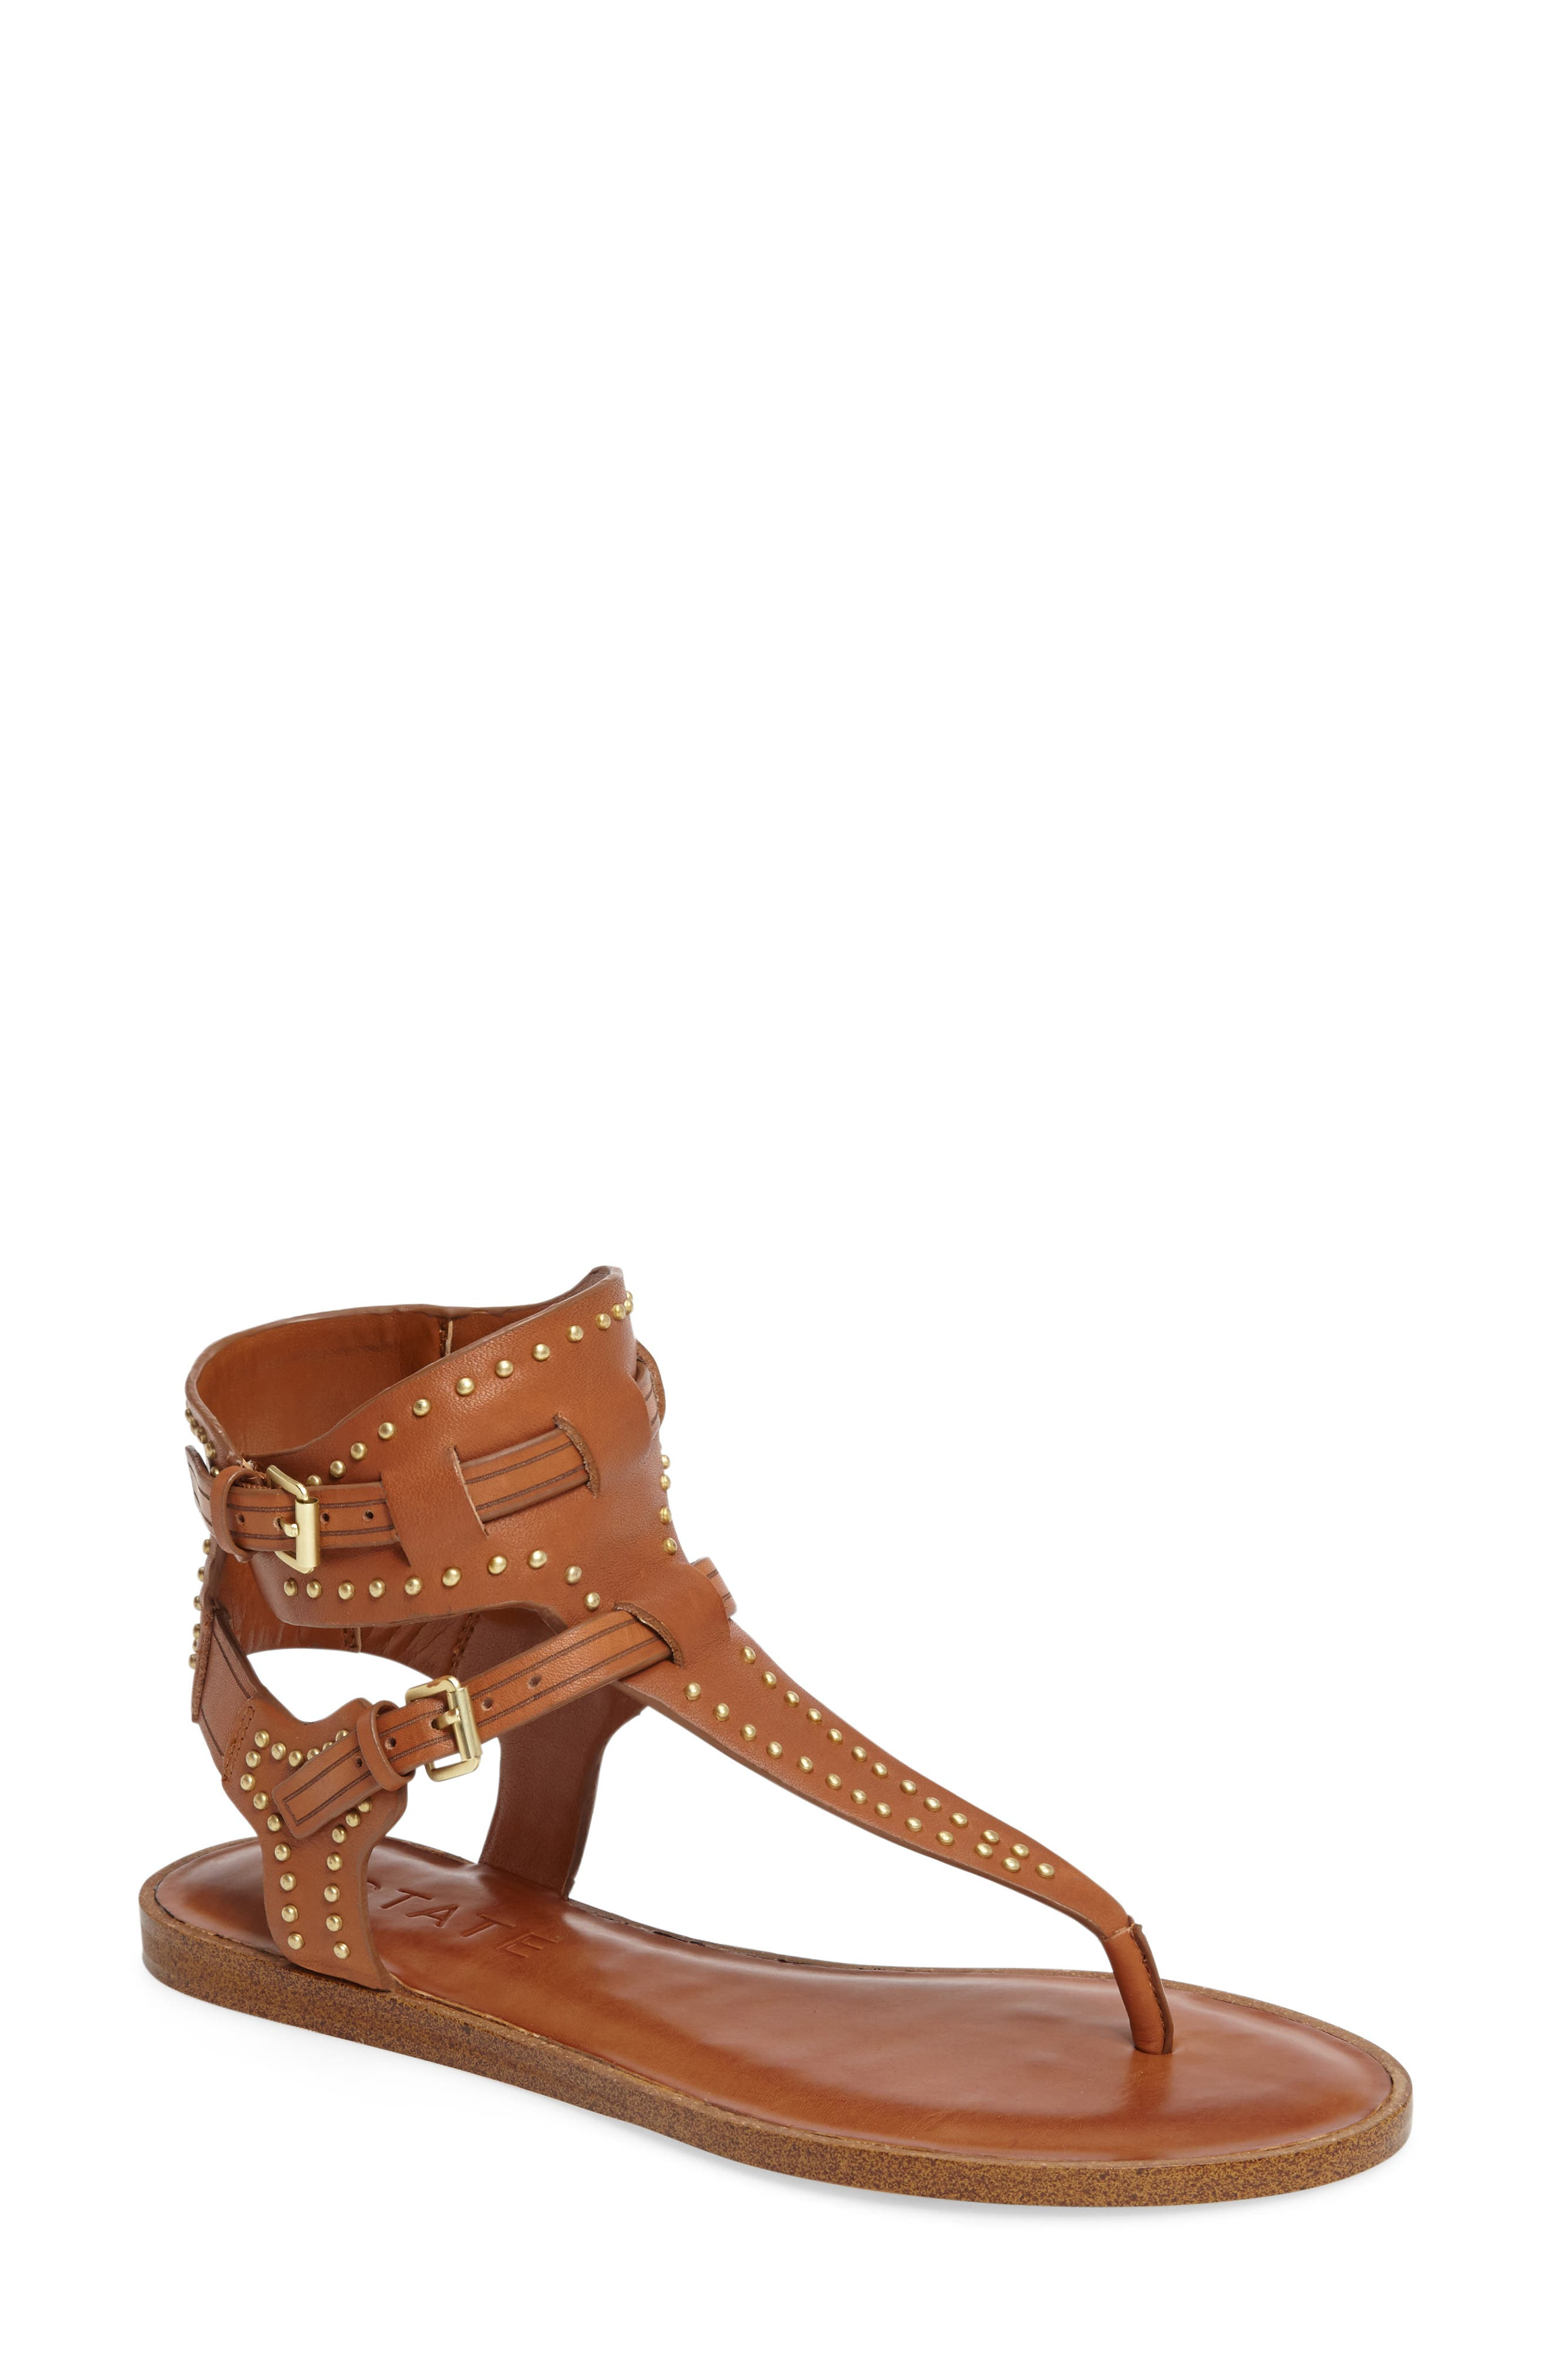 Lamanna Ankle Strap Sandal,                             Main thumbnail 1, color,                             Tan Leather